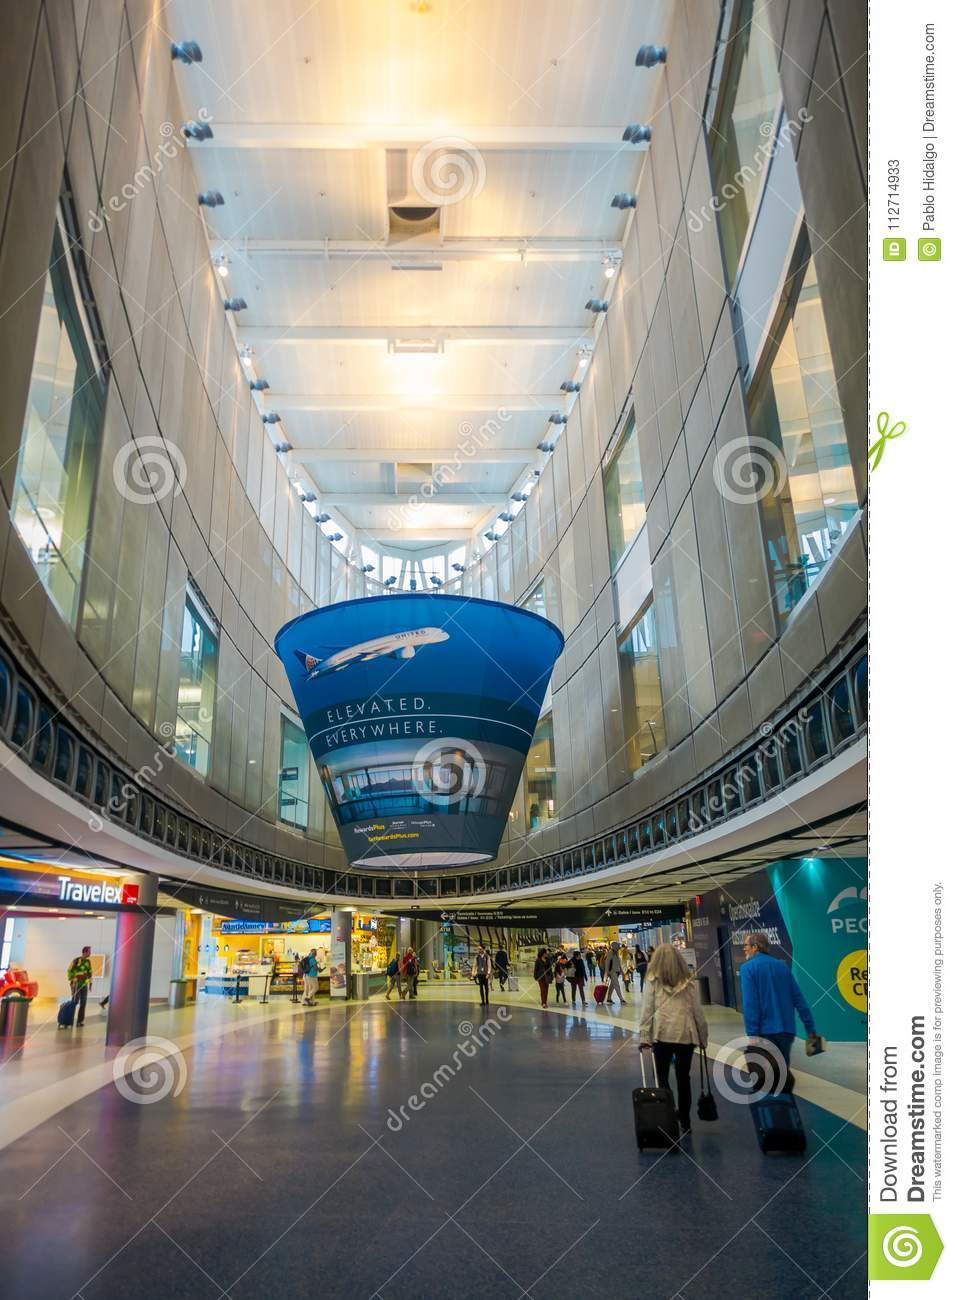 HOUSTON, USA- MARCH 10, 2018: Indoor view of unidentified people walking inside of Houston Intercontinental Airport